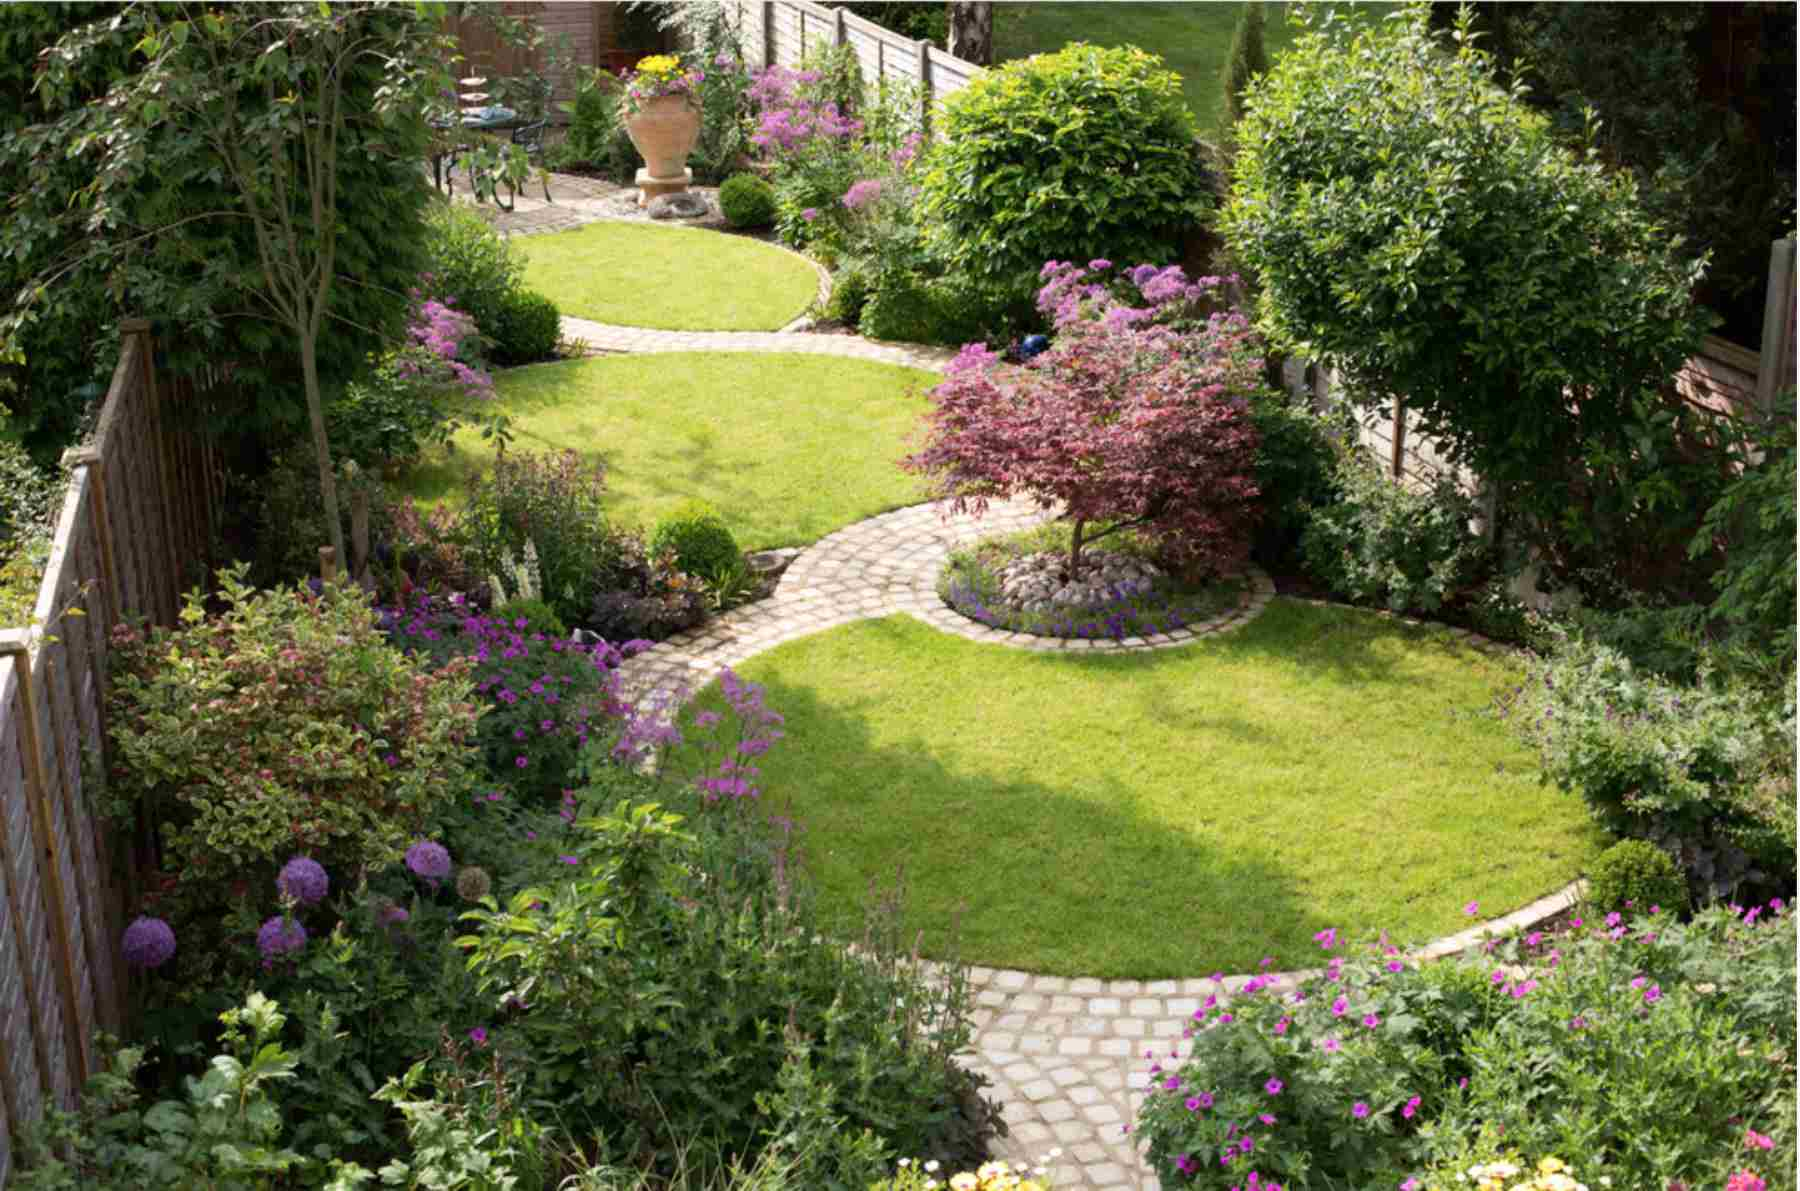 10 Backyard Landscaping Ideas to Inspire You